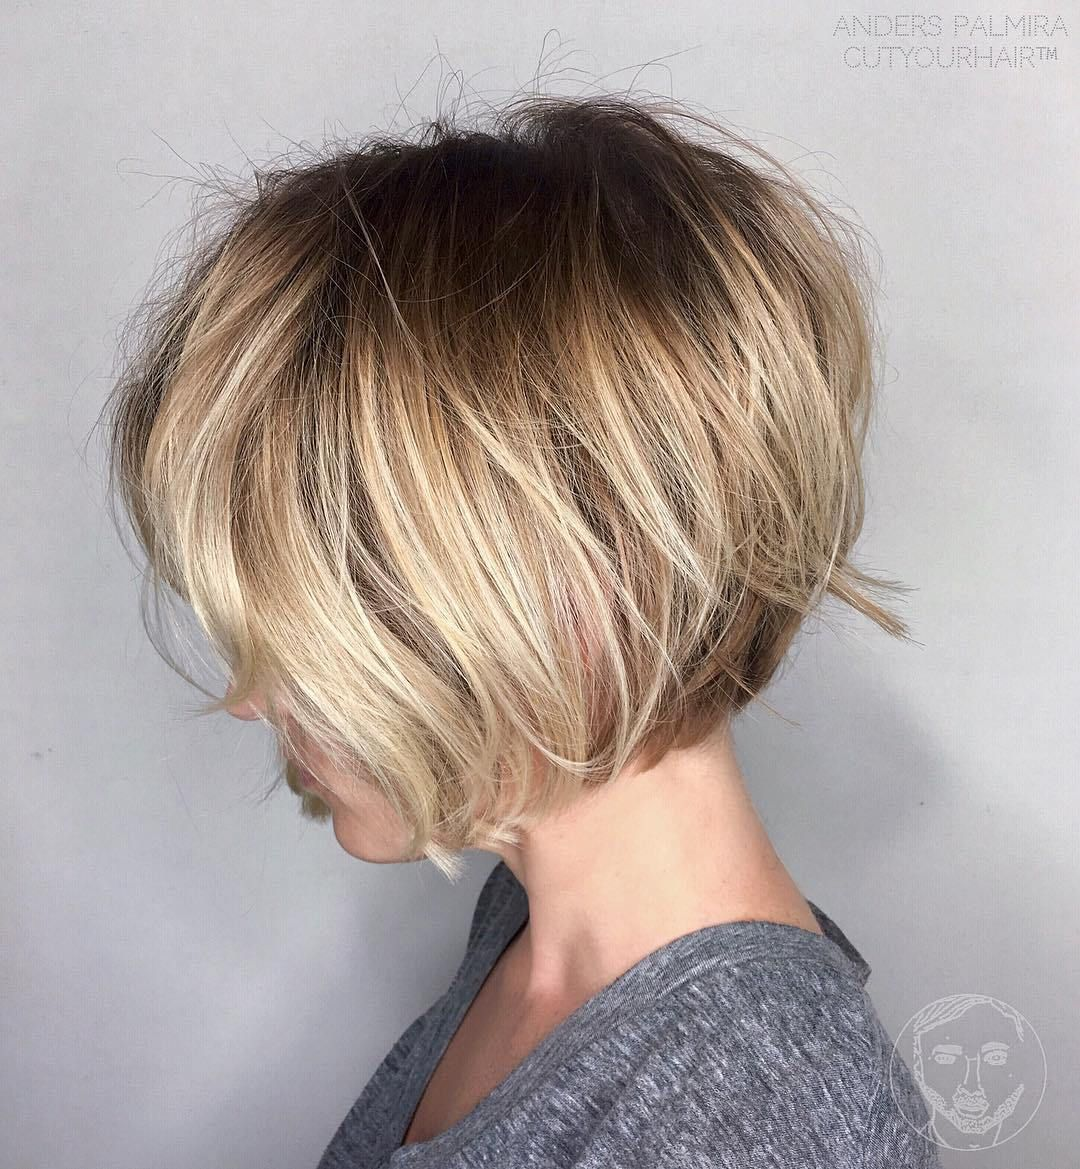 Jagged Short Bob For Thin Hair Bobs For Thin Hair Bob Haircut For Fine Hair Haircuts For Fine Hair